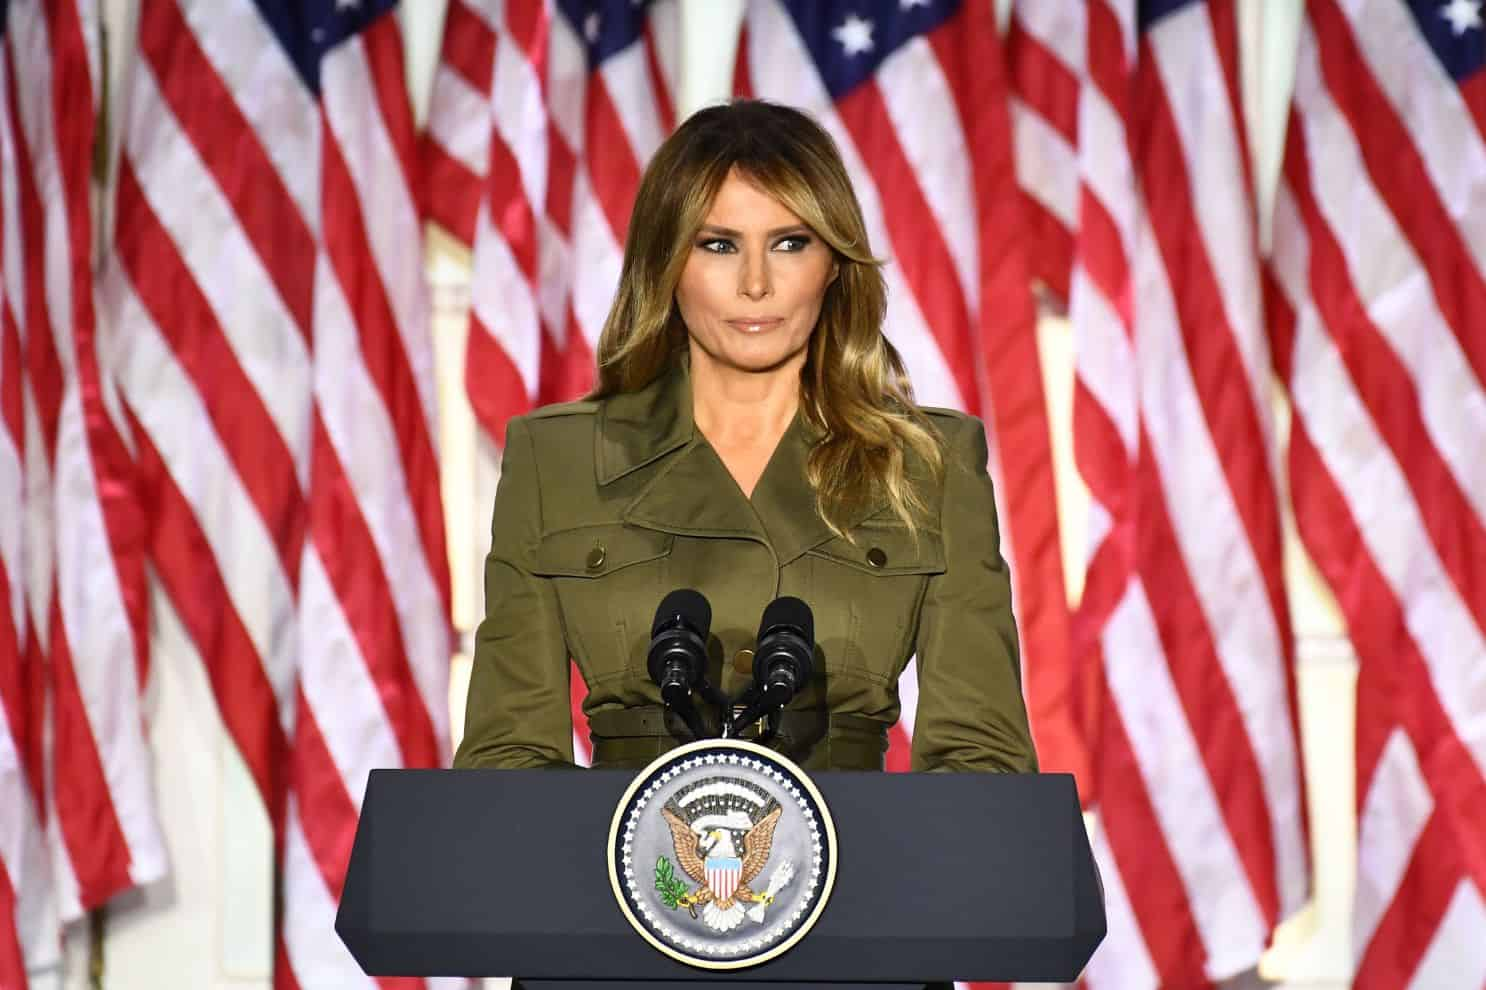 Media created picture of my husband I don't recognise' - Melania Trump 4